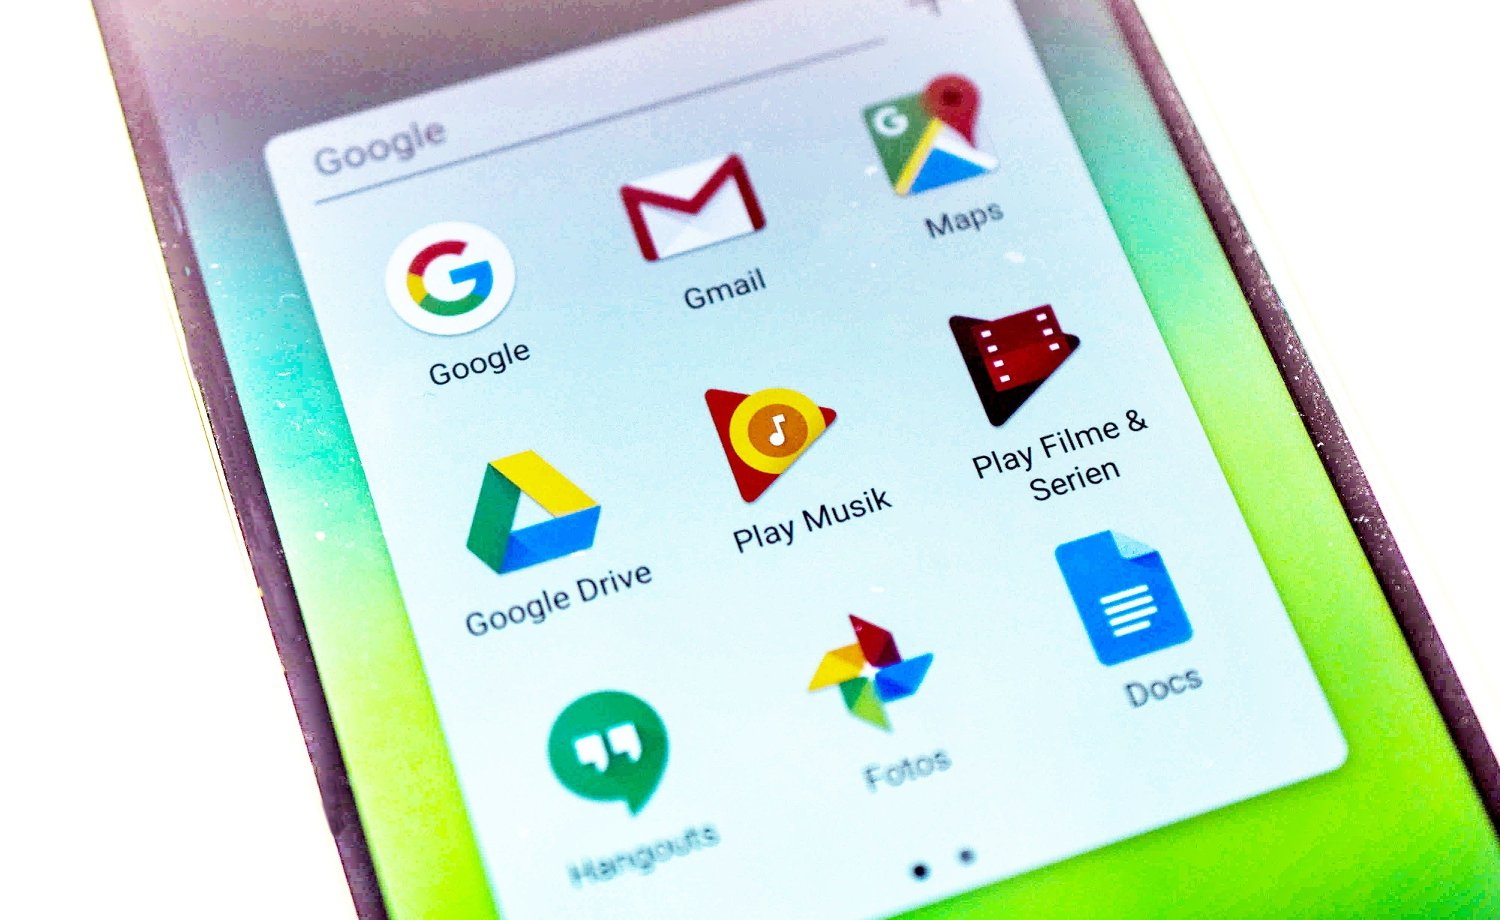 Rostock, Germany - January 13, 2018: Google apps on Android smar Rostock, Germany - January 13, 2018: Google apps on Android smartphone, including Gmail and Google Maps.